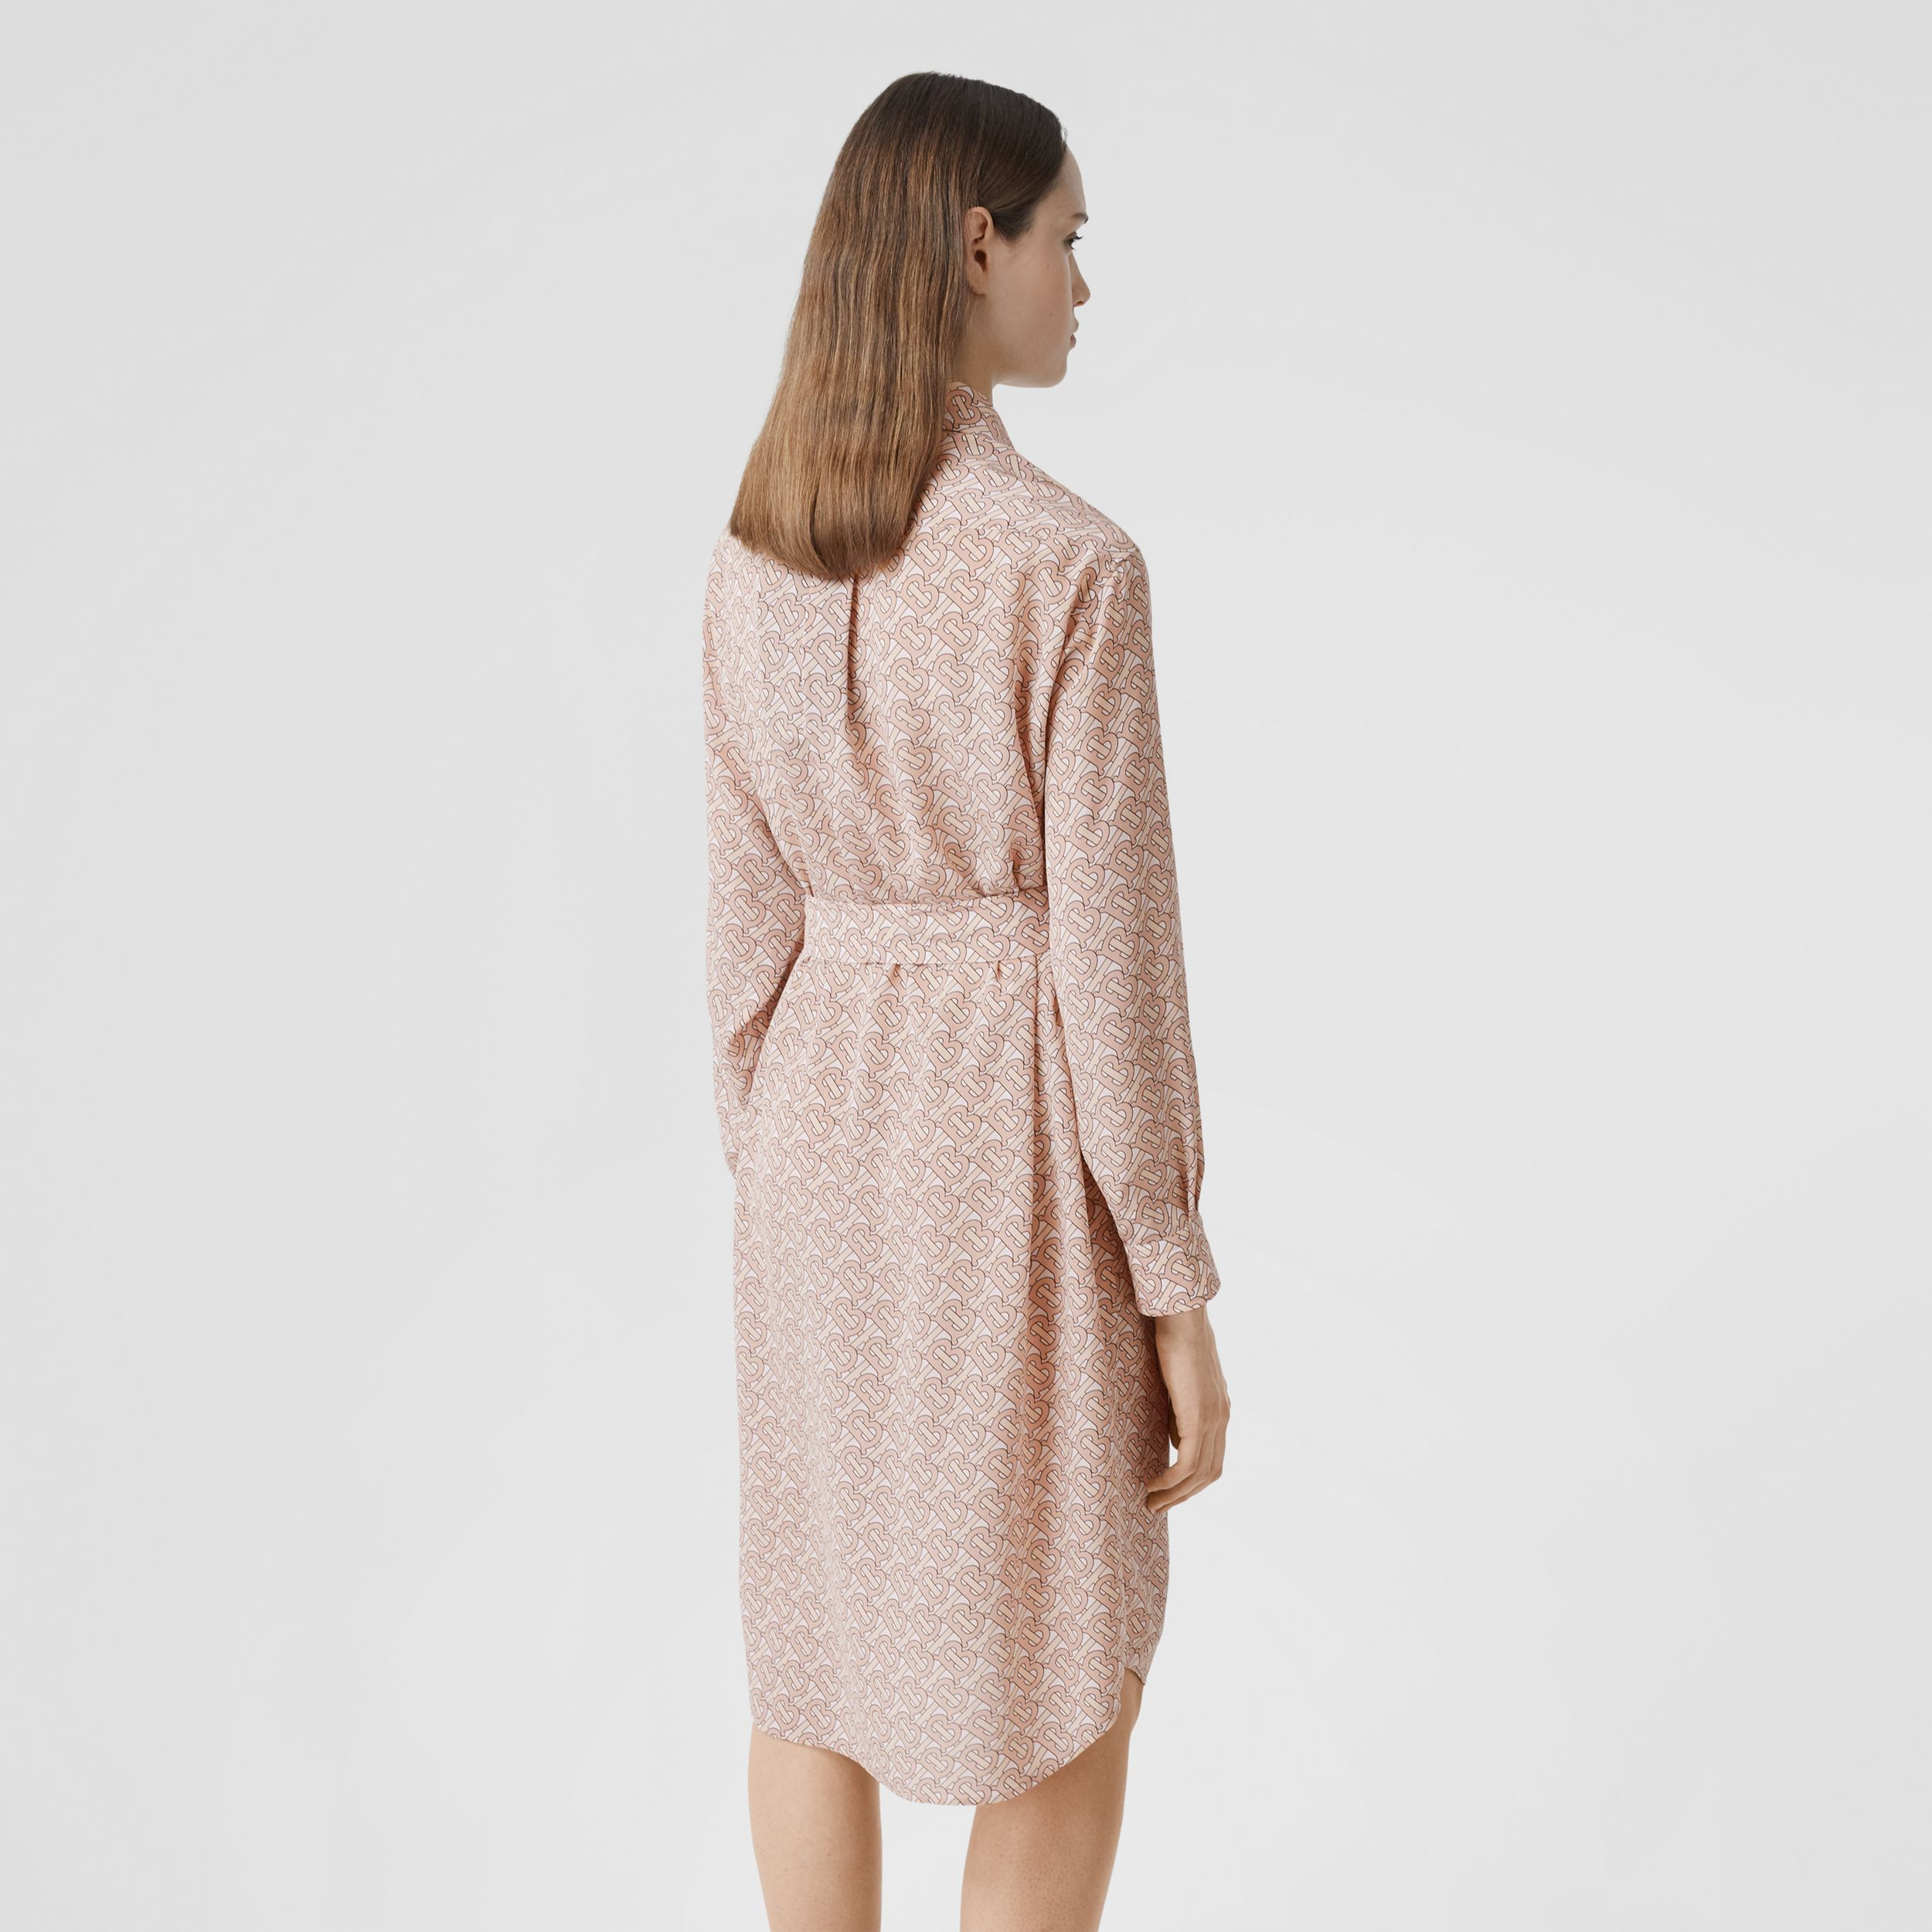 Monogram Print Silk Crepe De Chine Shirt Dress in Pale Copper Pink - Women | Burberry - 3